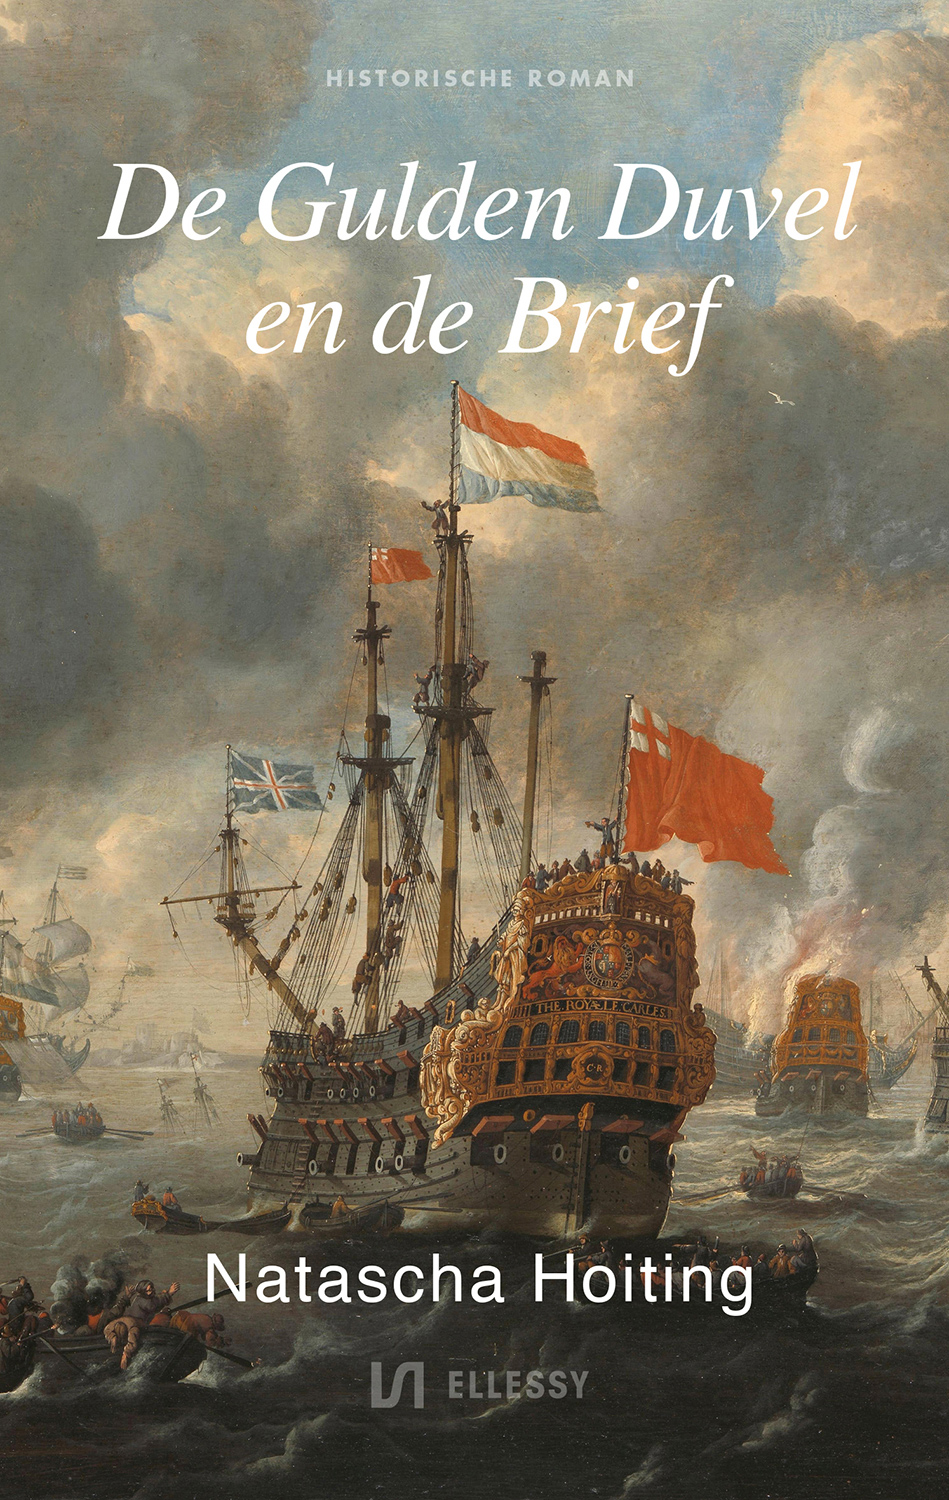 De Gulden Duvel en de Brief